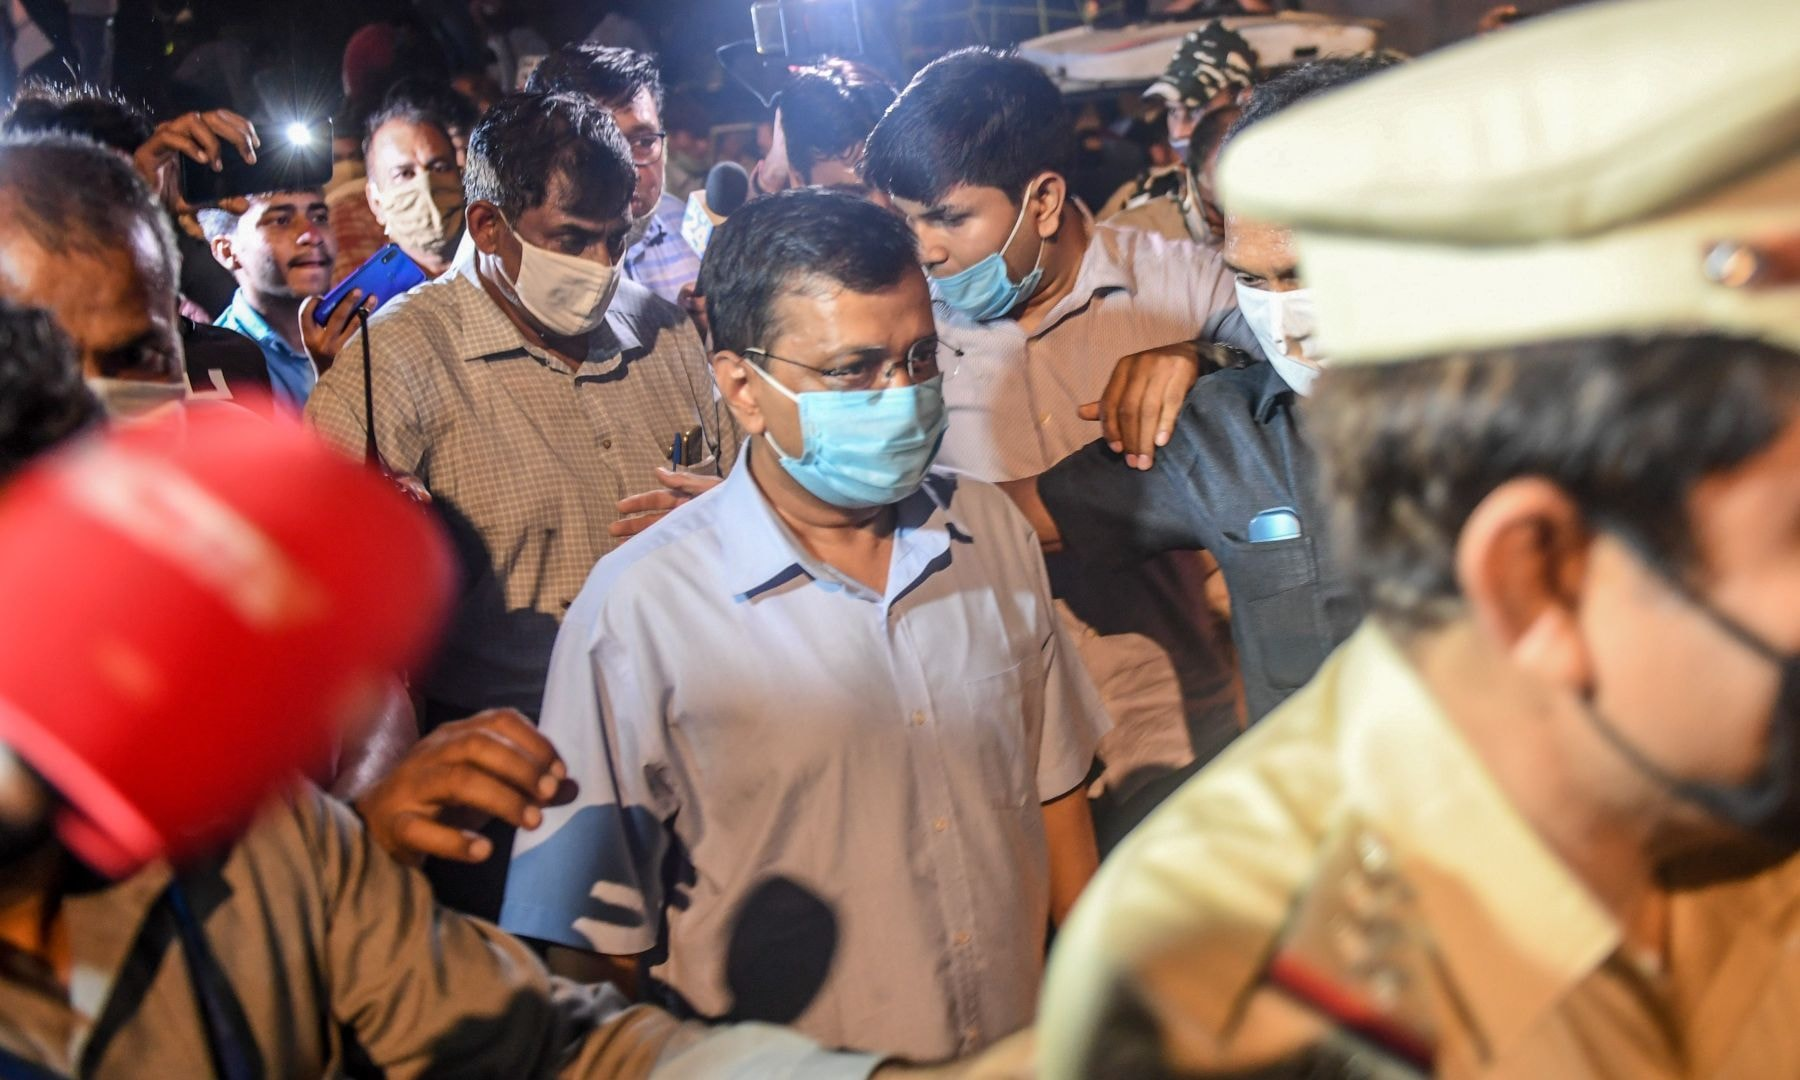 Chief Minister of Delhi Arvind Kejriwal (C) participates in a protest against the alleged gang-rape of a 19-year-old woman in New Delhi. — AFP